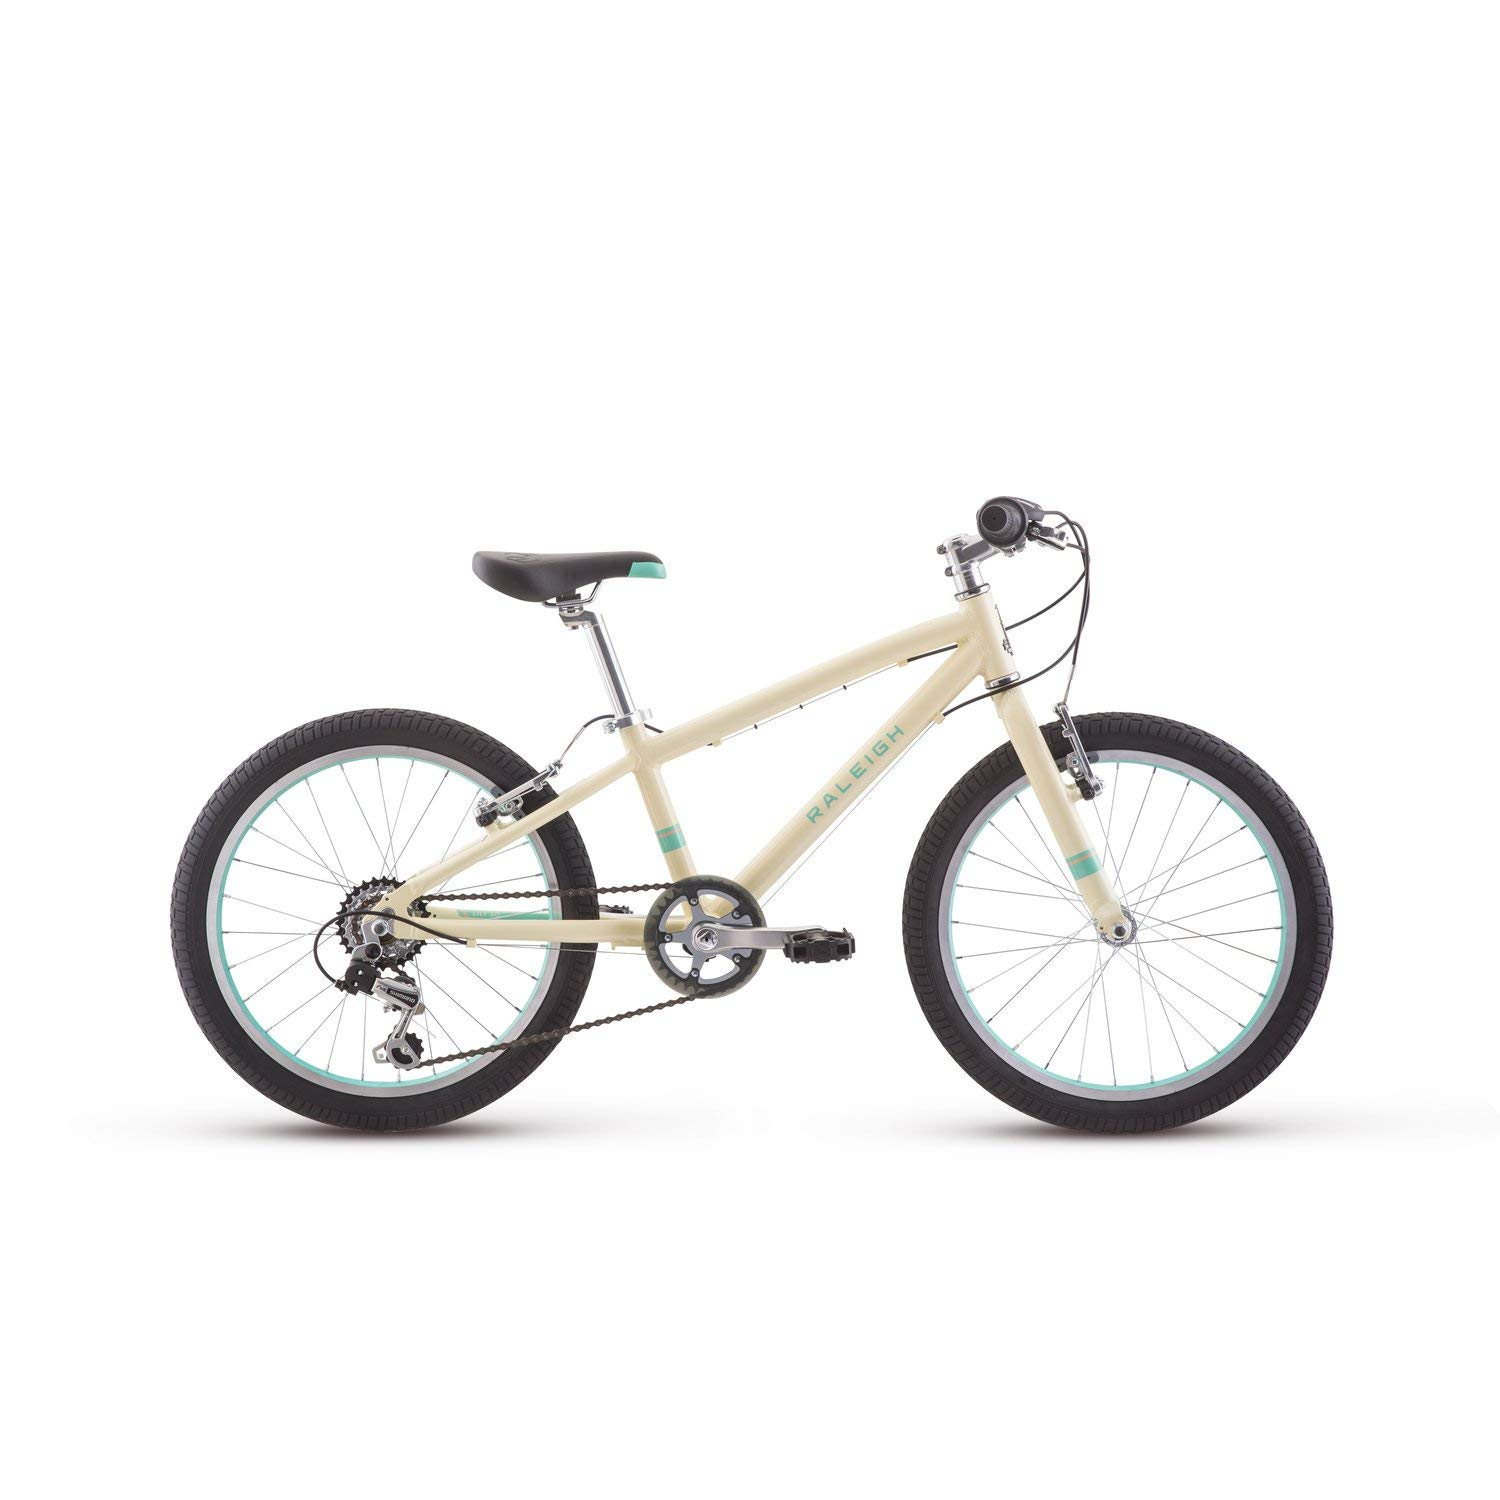 Raleigh Bikes Lily 20 Kids Mountain Bike Girls Youth 4-9 Years Old, White